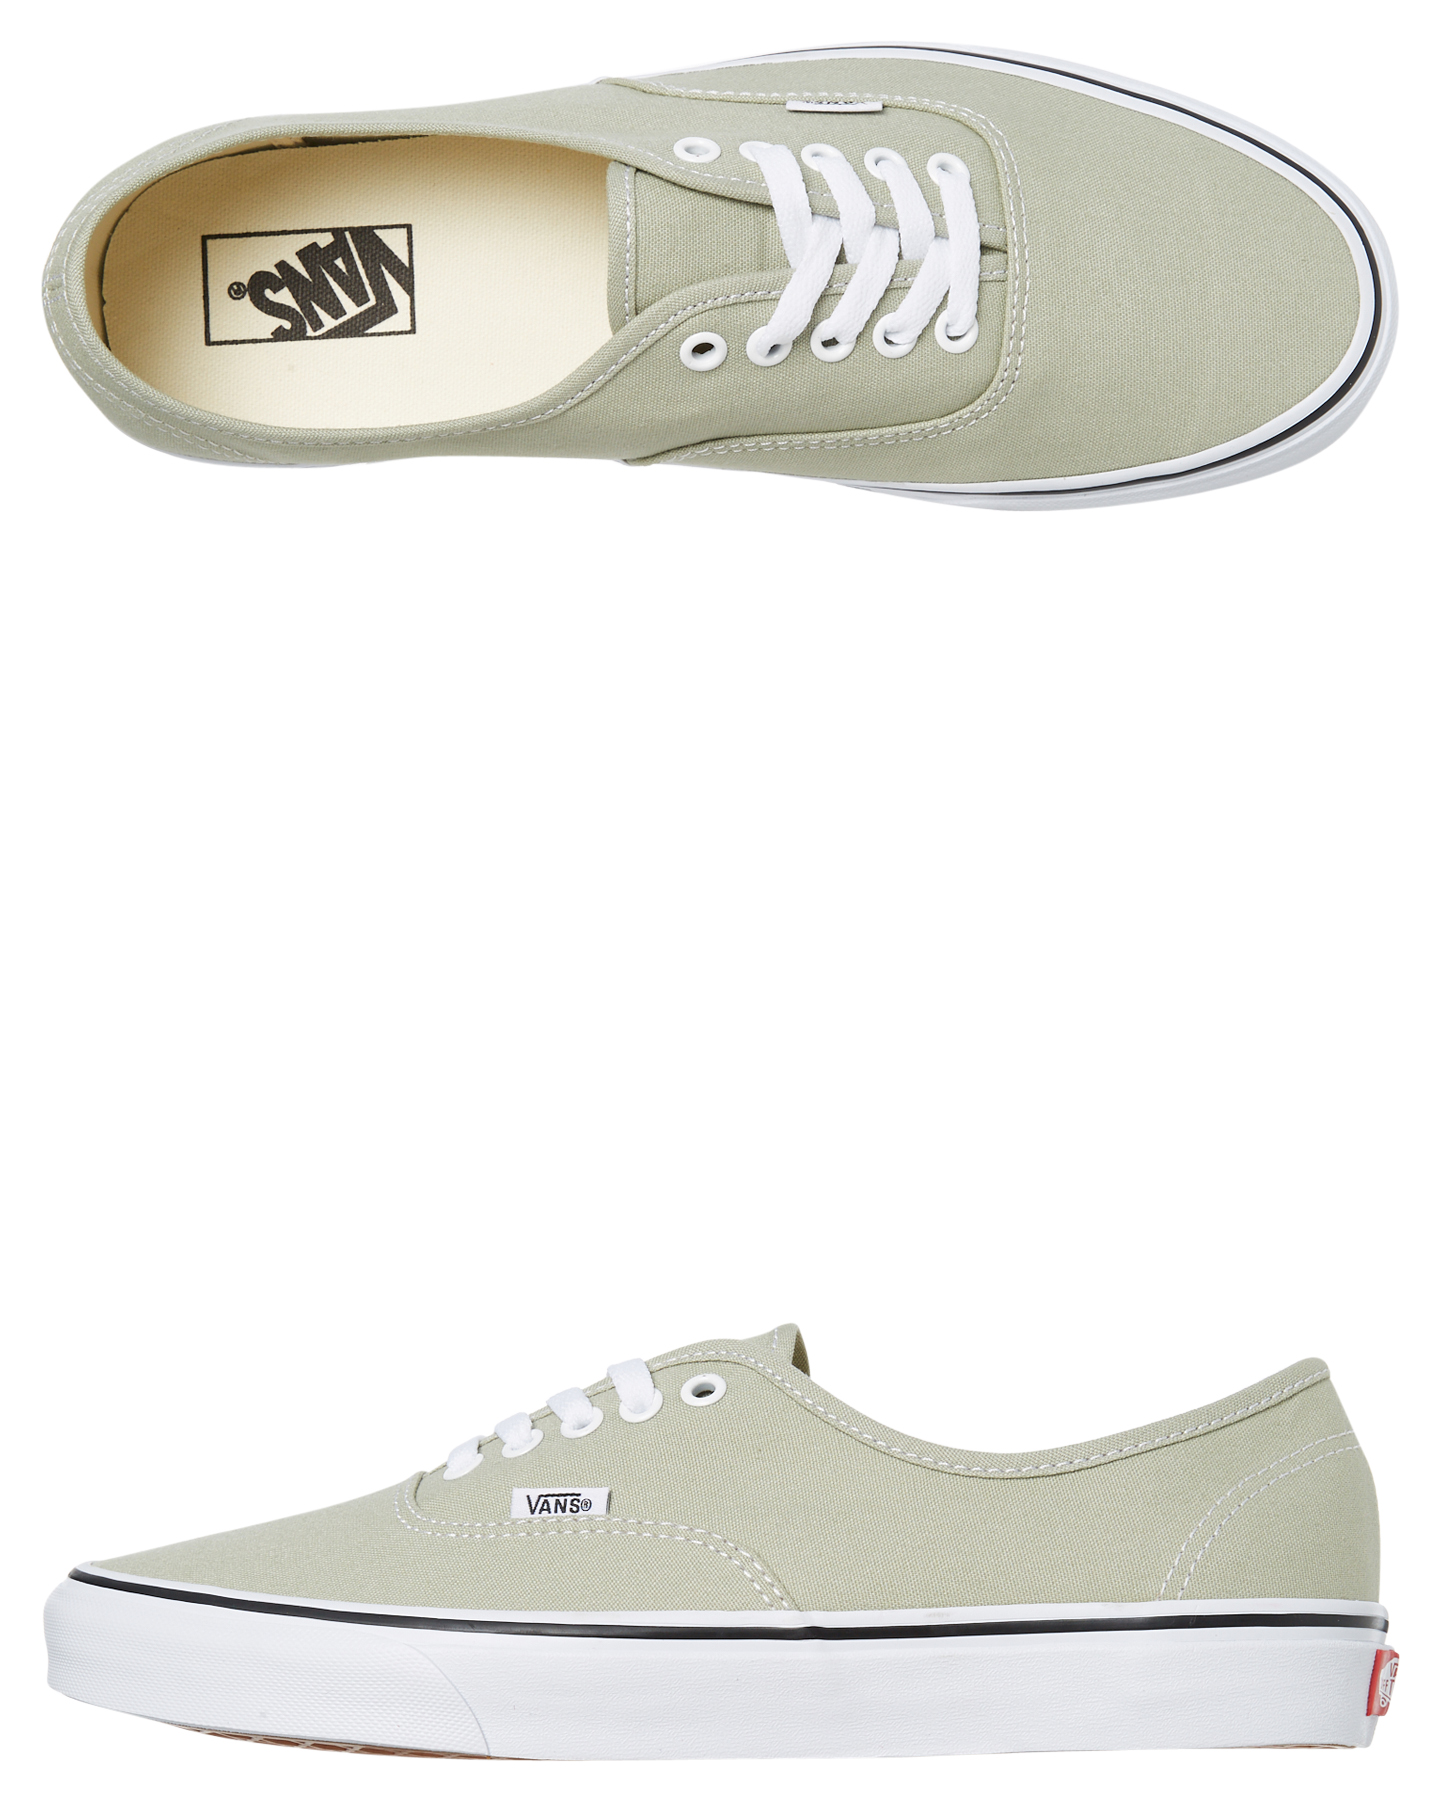 14ad36f8a06610 Details about New Vans Women s Womens Authentic Shoe Rubber Canvas Green